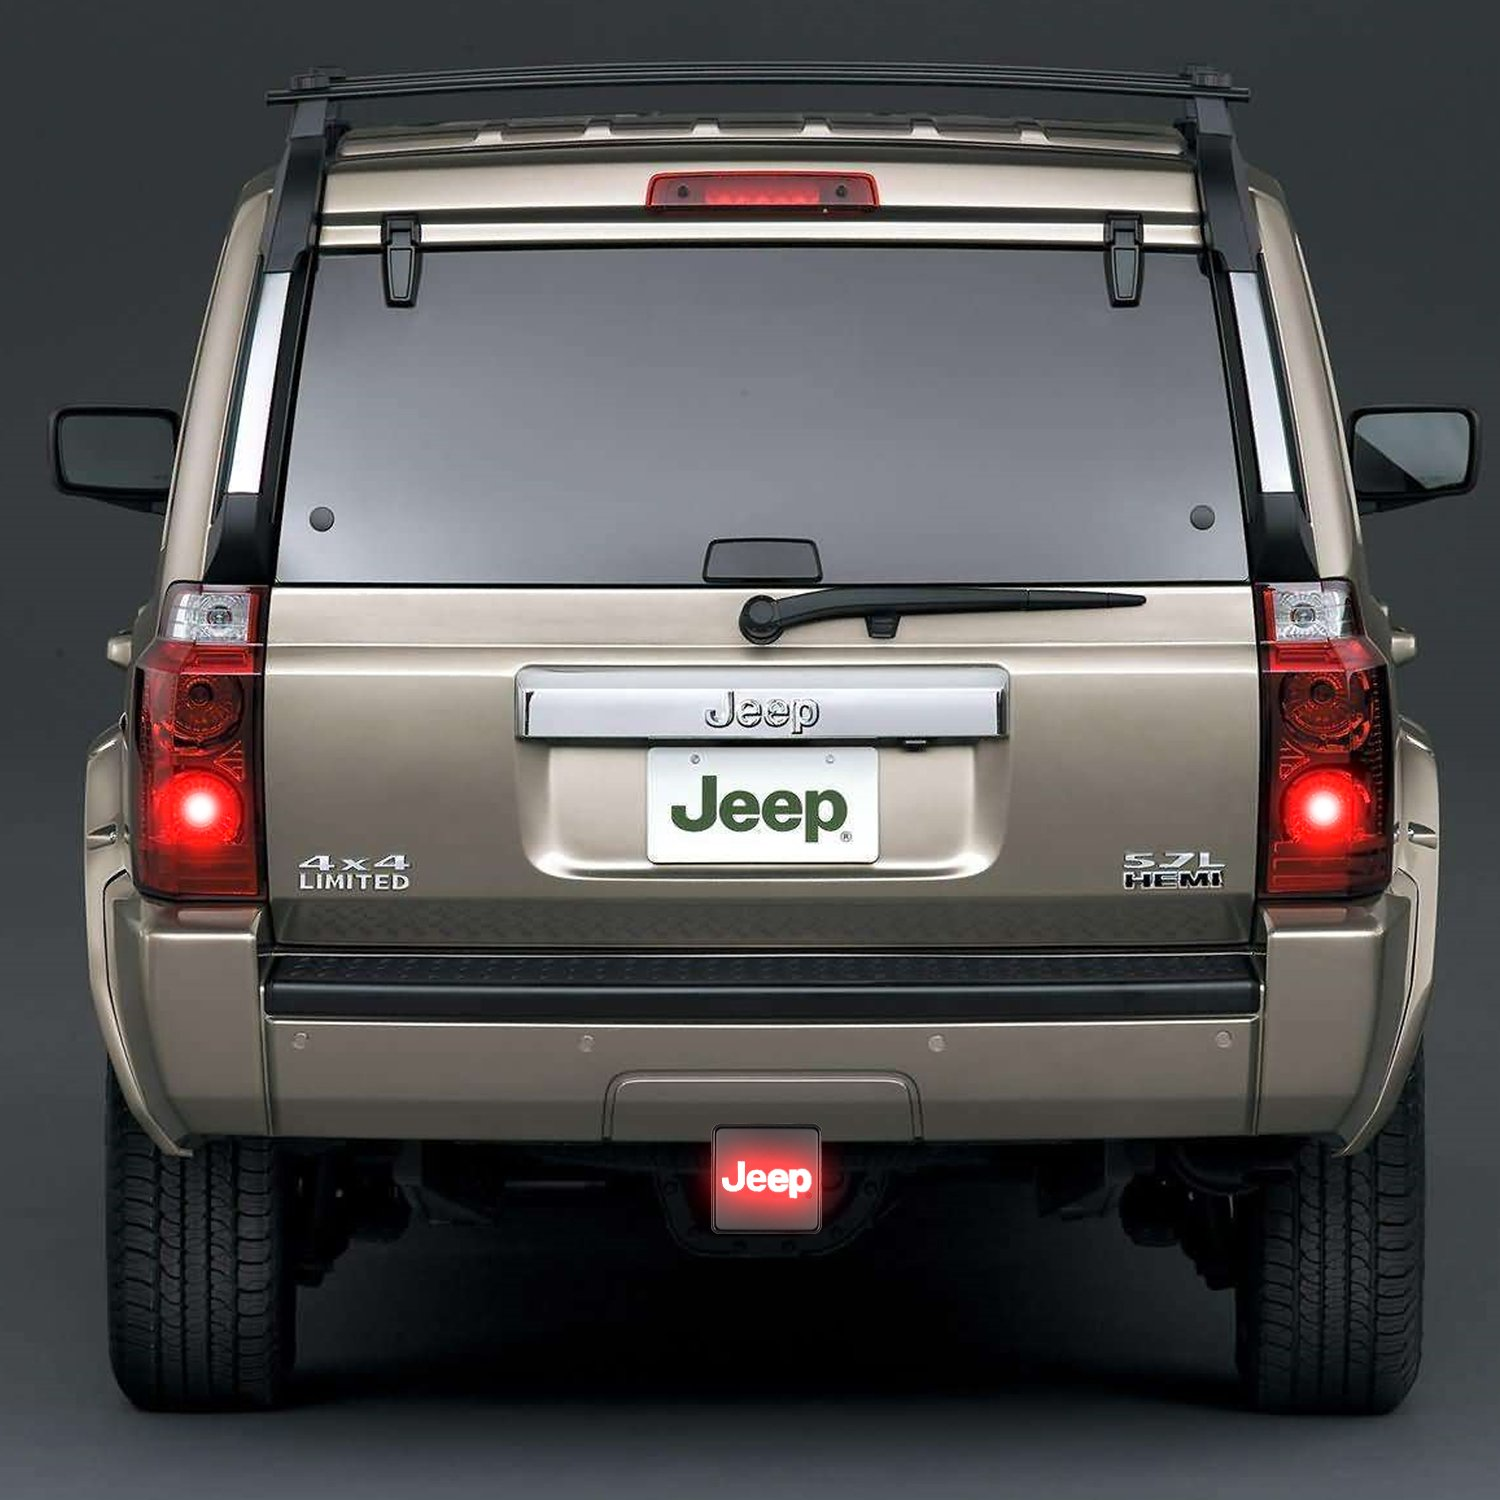 Bully Cr 007j Hitch Cover With Illuminated Jeep Logo Brake Light Wiring Black Square Automotive